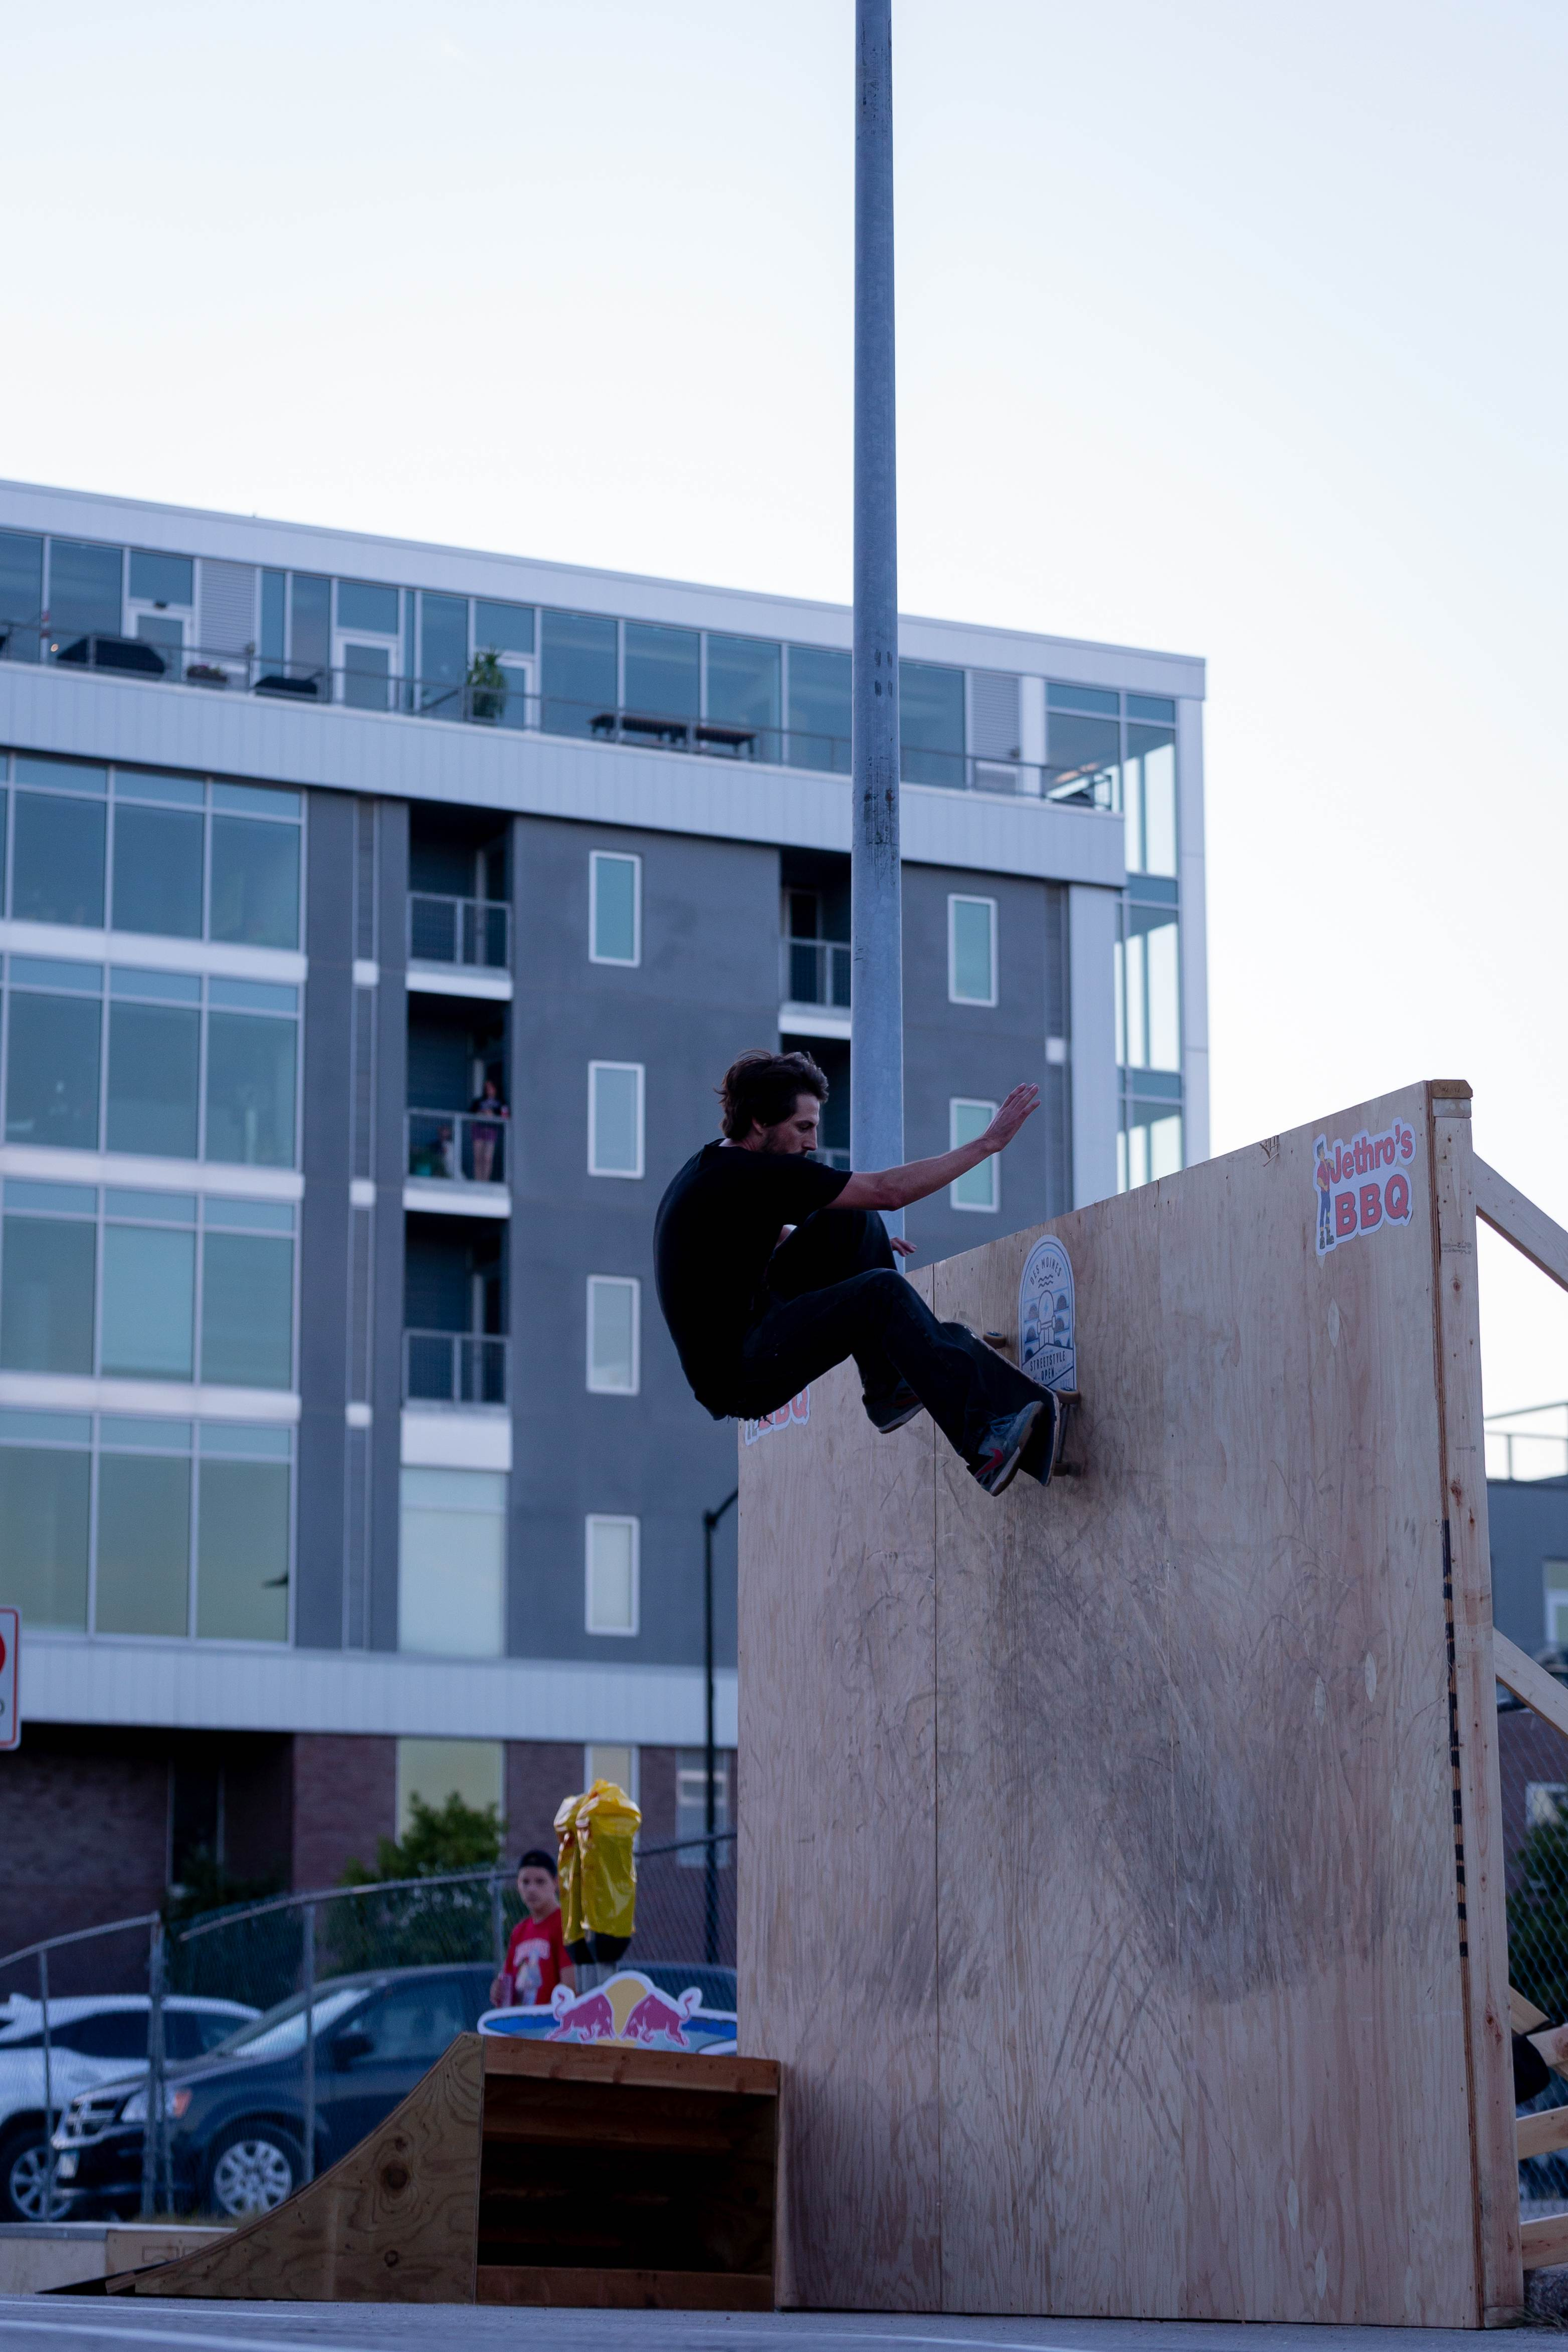 Des Moines Streetstyle Open 2021 - Ollie to Wall